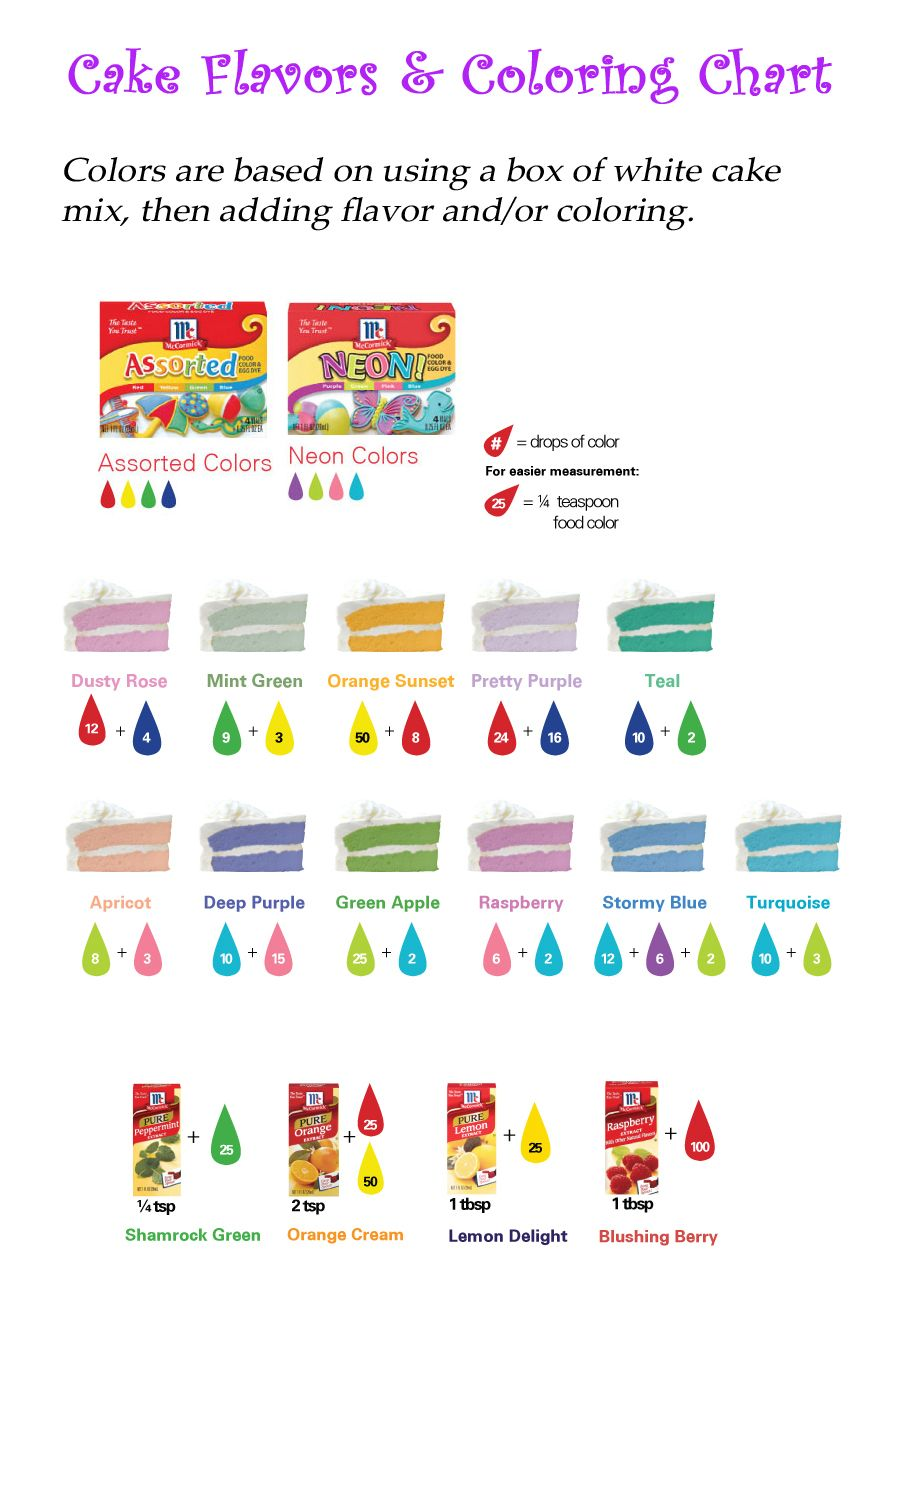 Food Coloring Chart For Icing - www.homeschoolingforfree.org